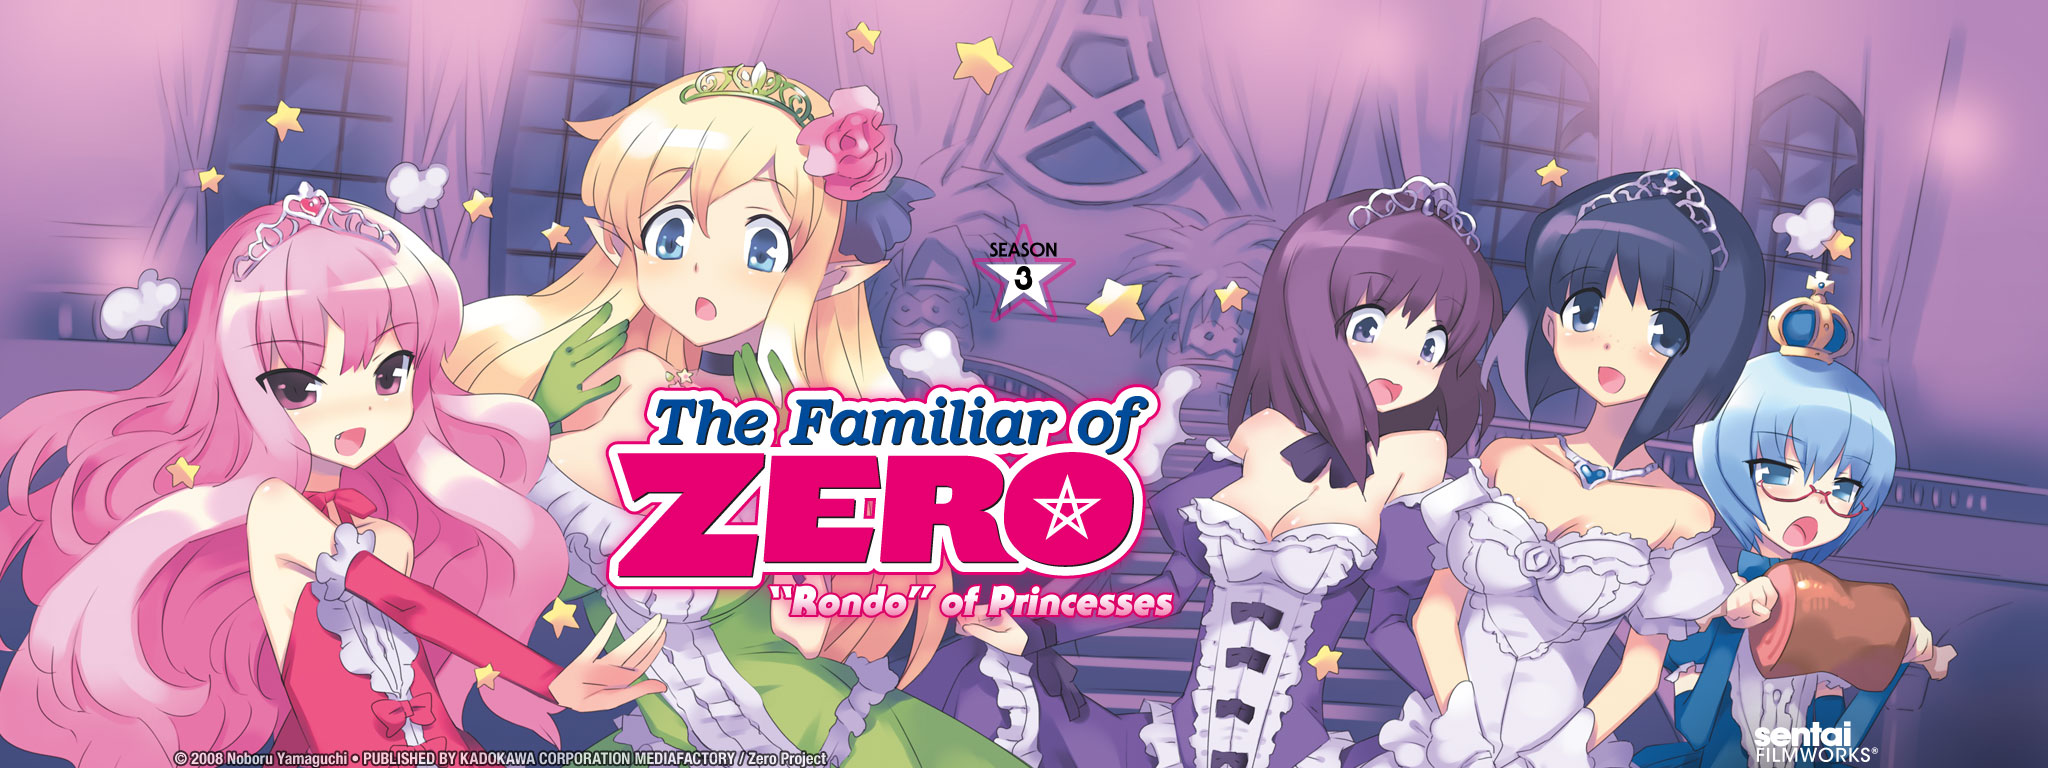 "The Familiar of Zero: ""Rondo"" of Princesses"